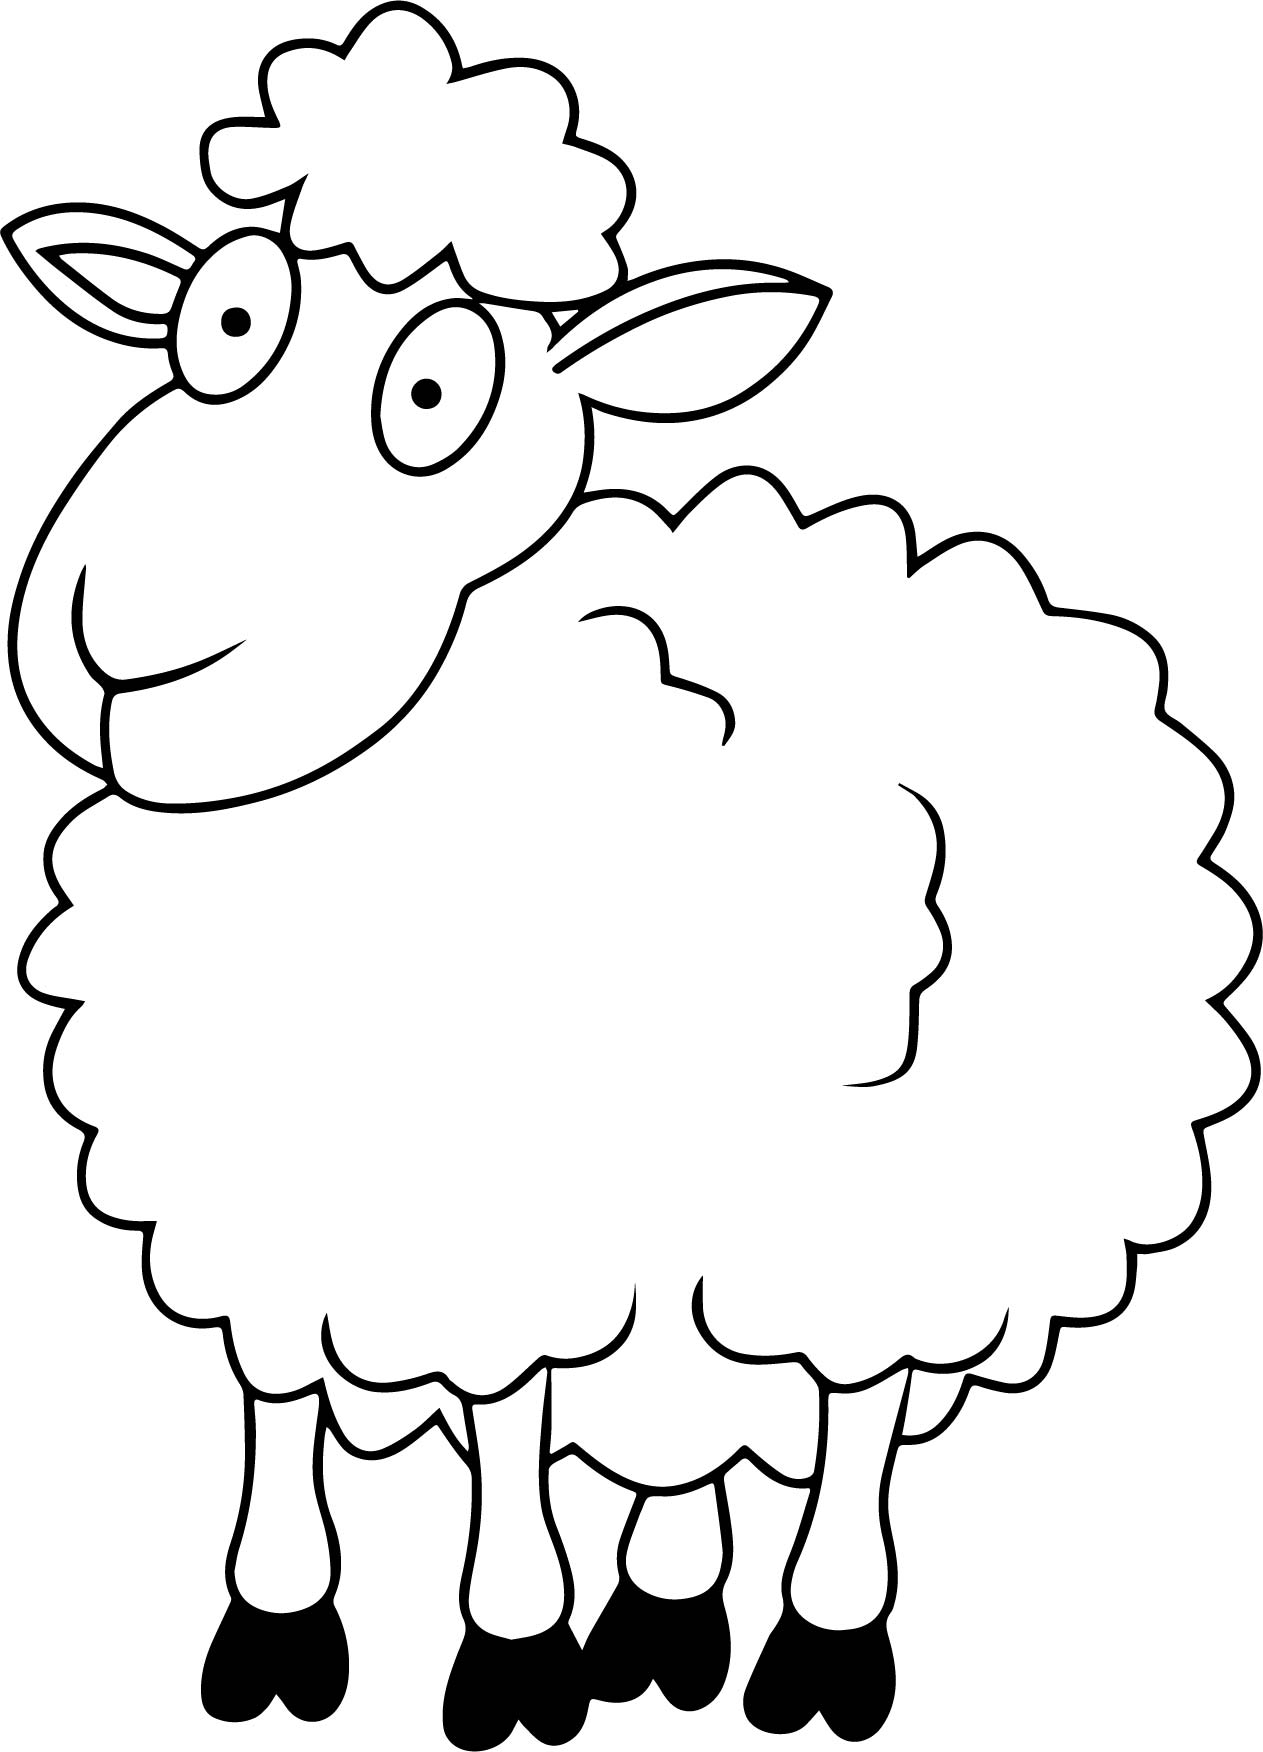 One Sheep Coloring Page